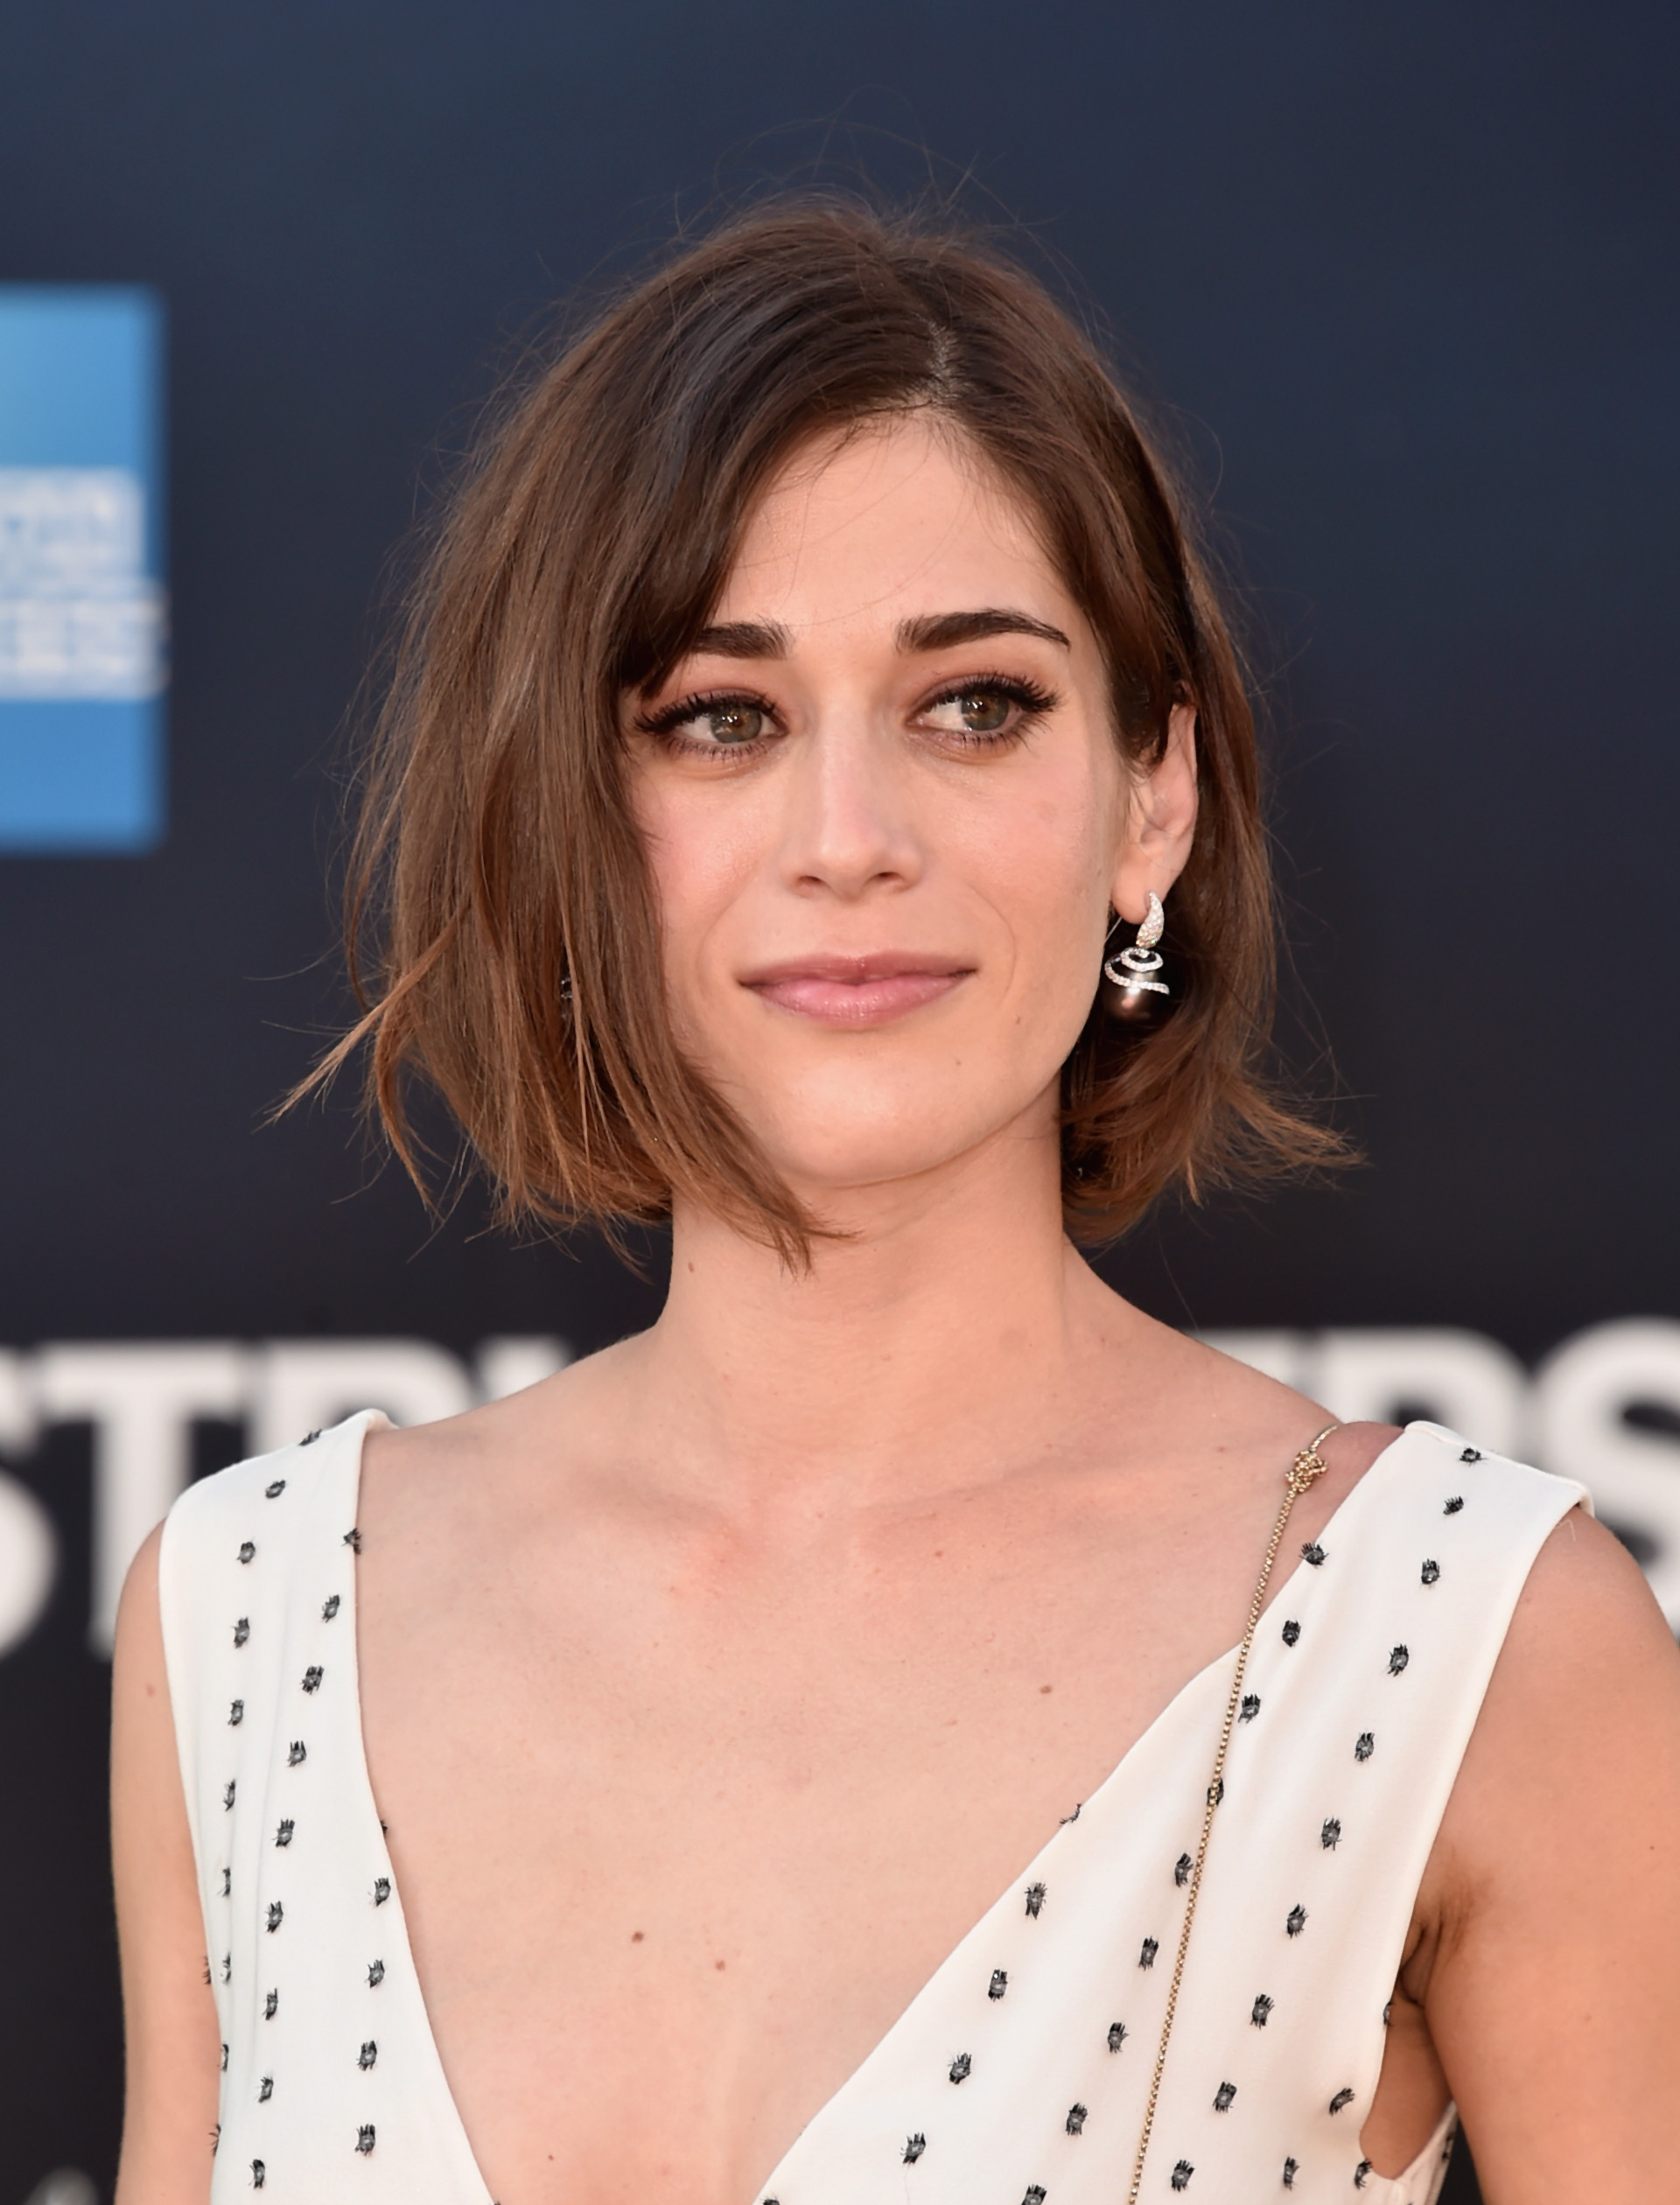 ICloud Lizzy Caplan nude (42 foto and video), Pussy, Paparazzi, Feet, see through 2017